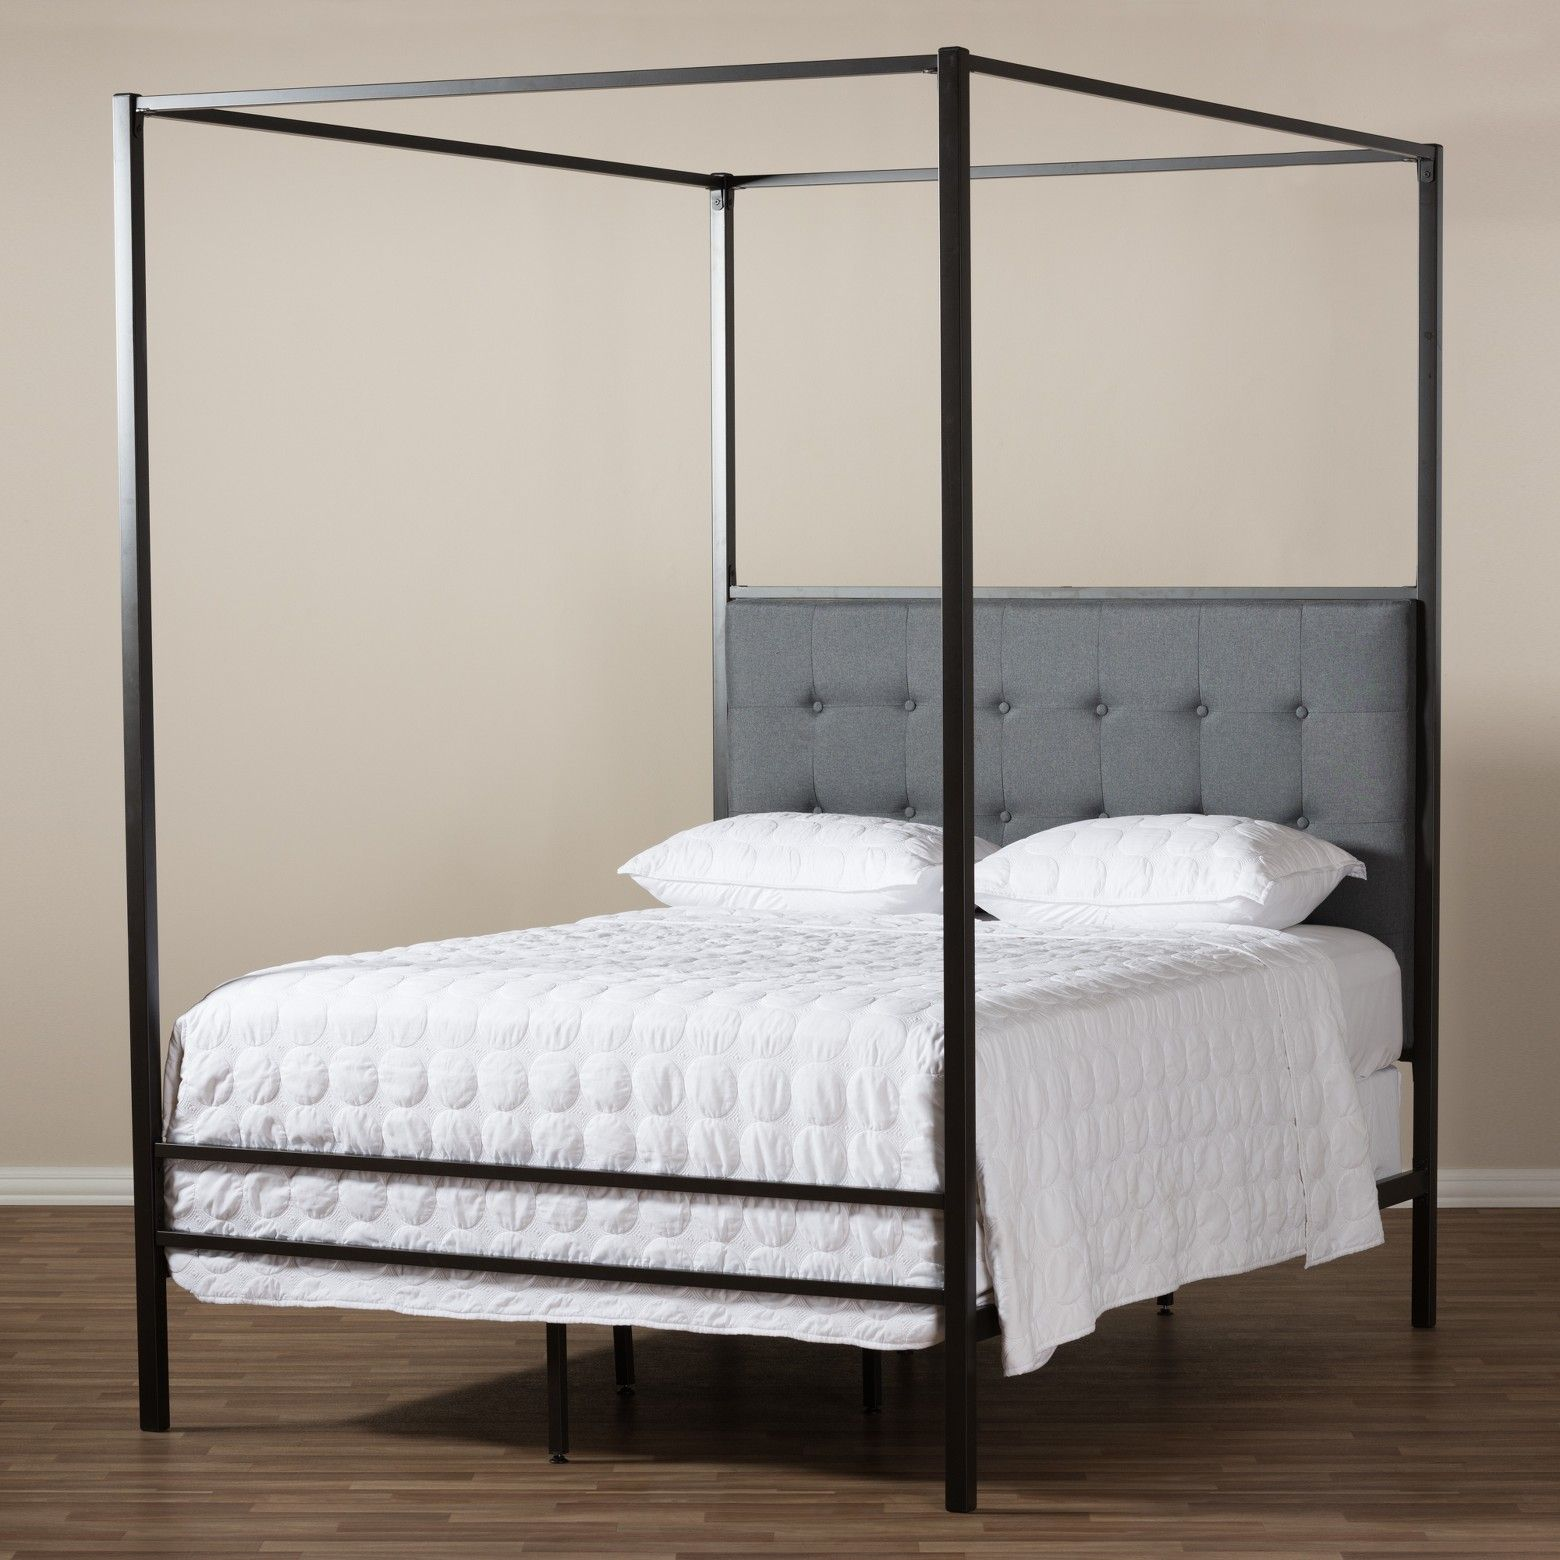 Eleanor Vintage Industrial Finished Metal Canopy Bed